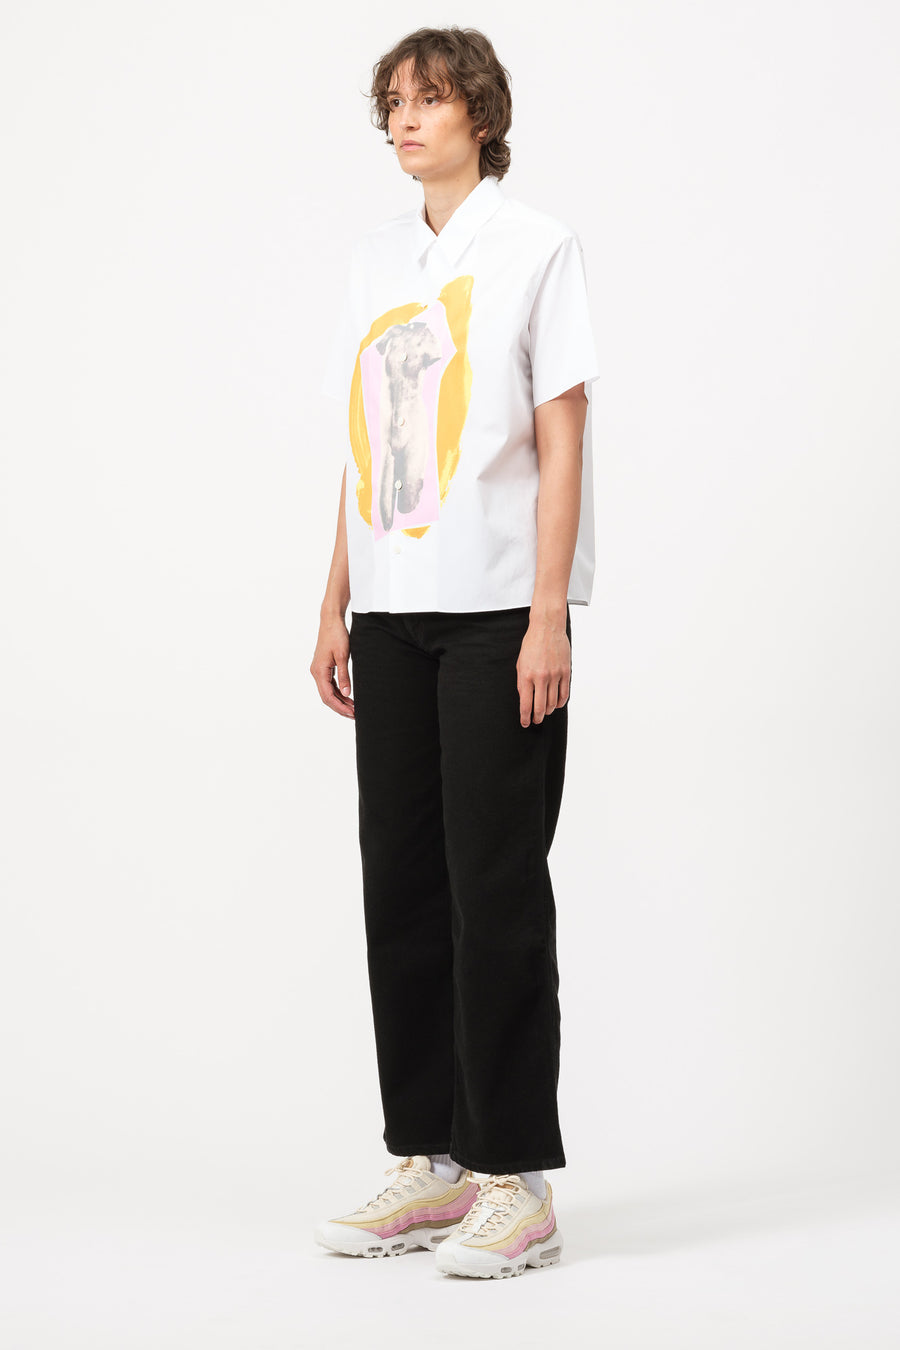 Marni S/S Polo Neck Shirt in Lily White - Notre